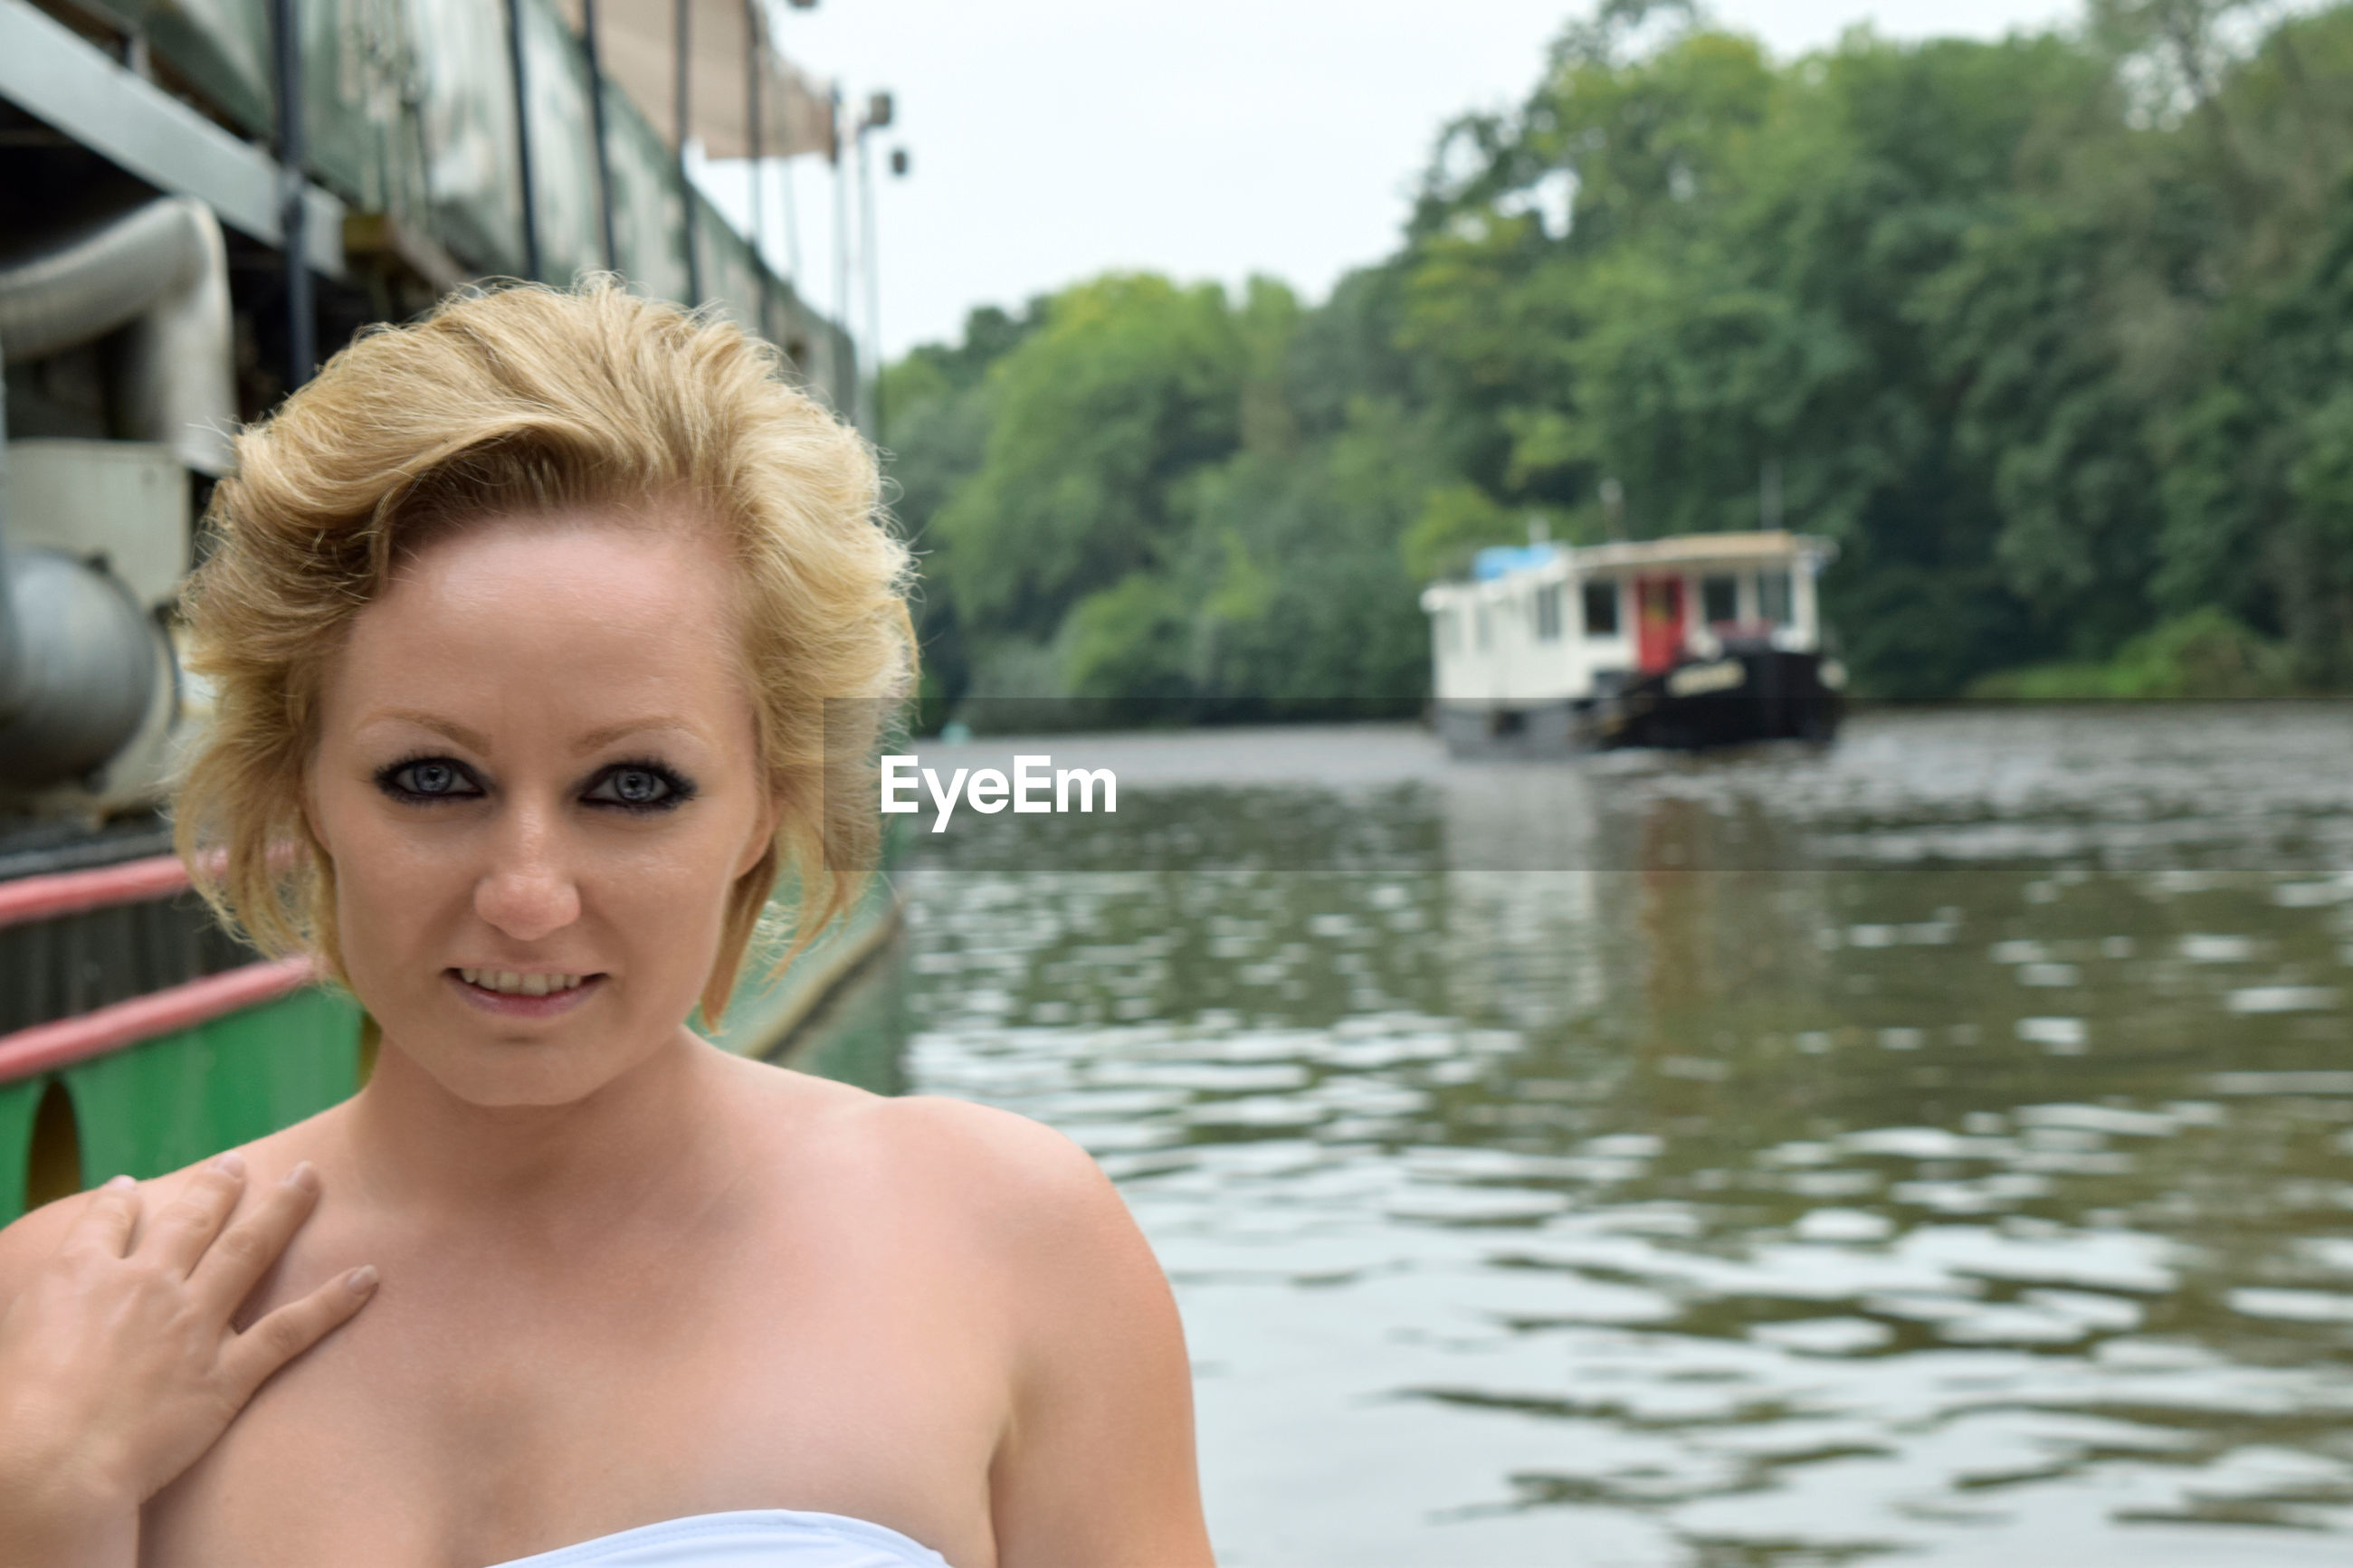 PORTRAIT OF YOUNG WOMAN IN BOAT AGAINST BLURRED BACKGROUND